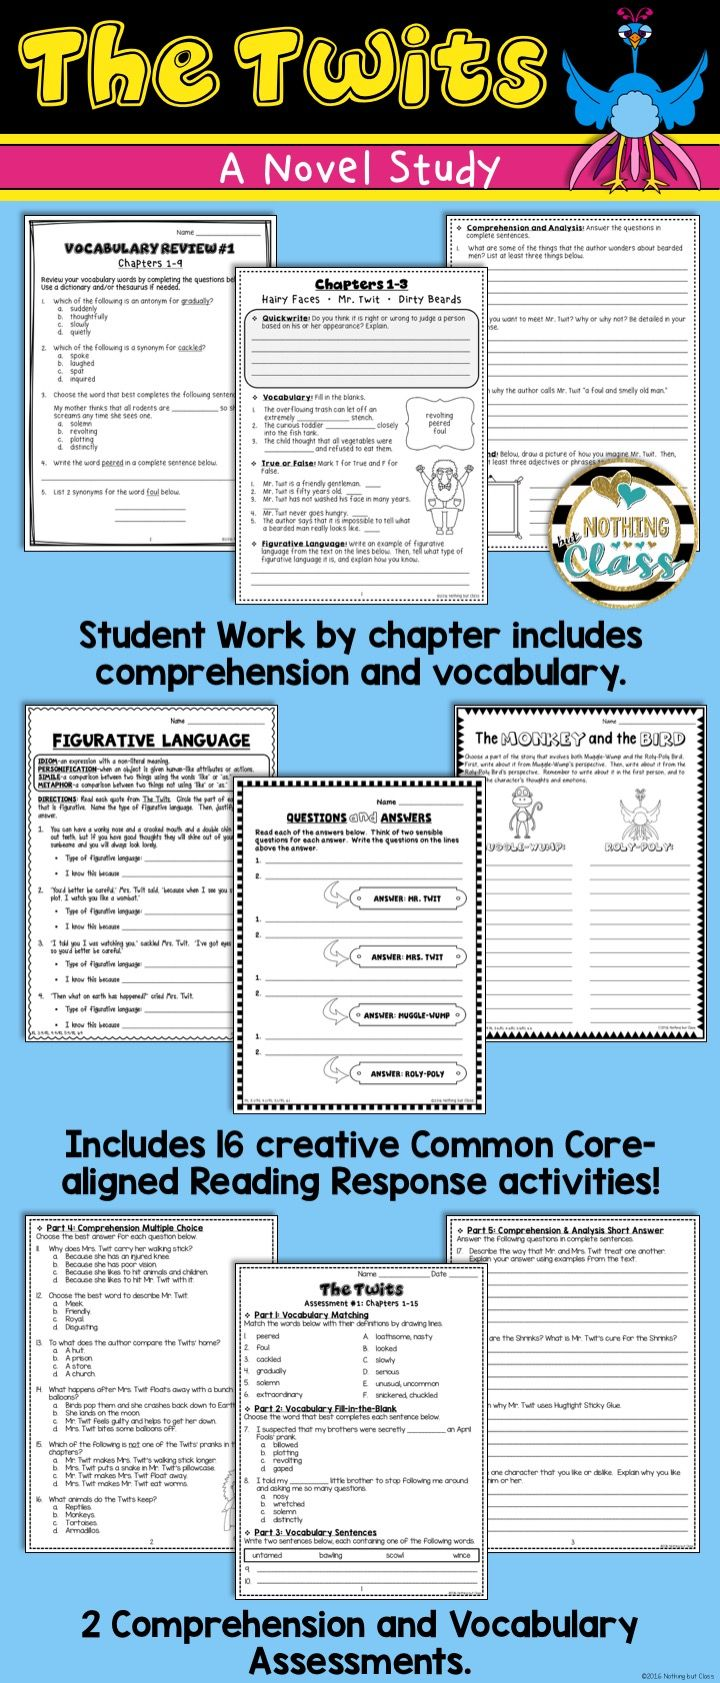 This novel study for The Twits, by Roald Dahl, contains 114 pages of resources, including comprehension, vocabulary, Common Core-aligned reading response activities, assessments, and more. Low prep and easy to use with a predictable layout and an included unit map!